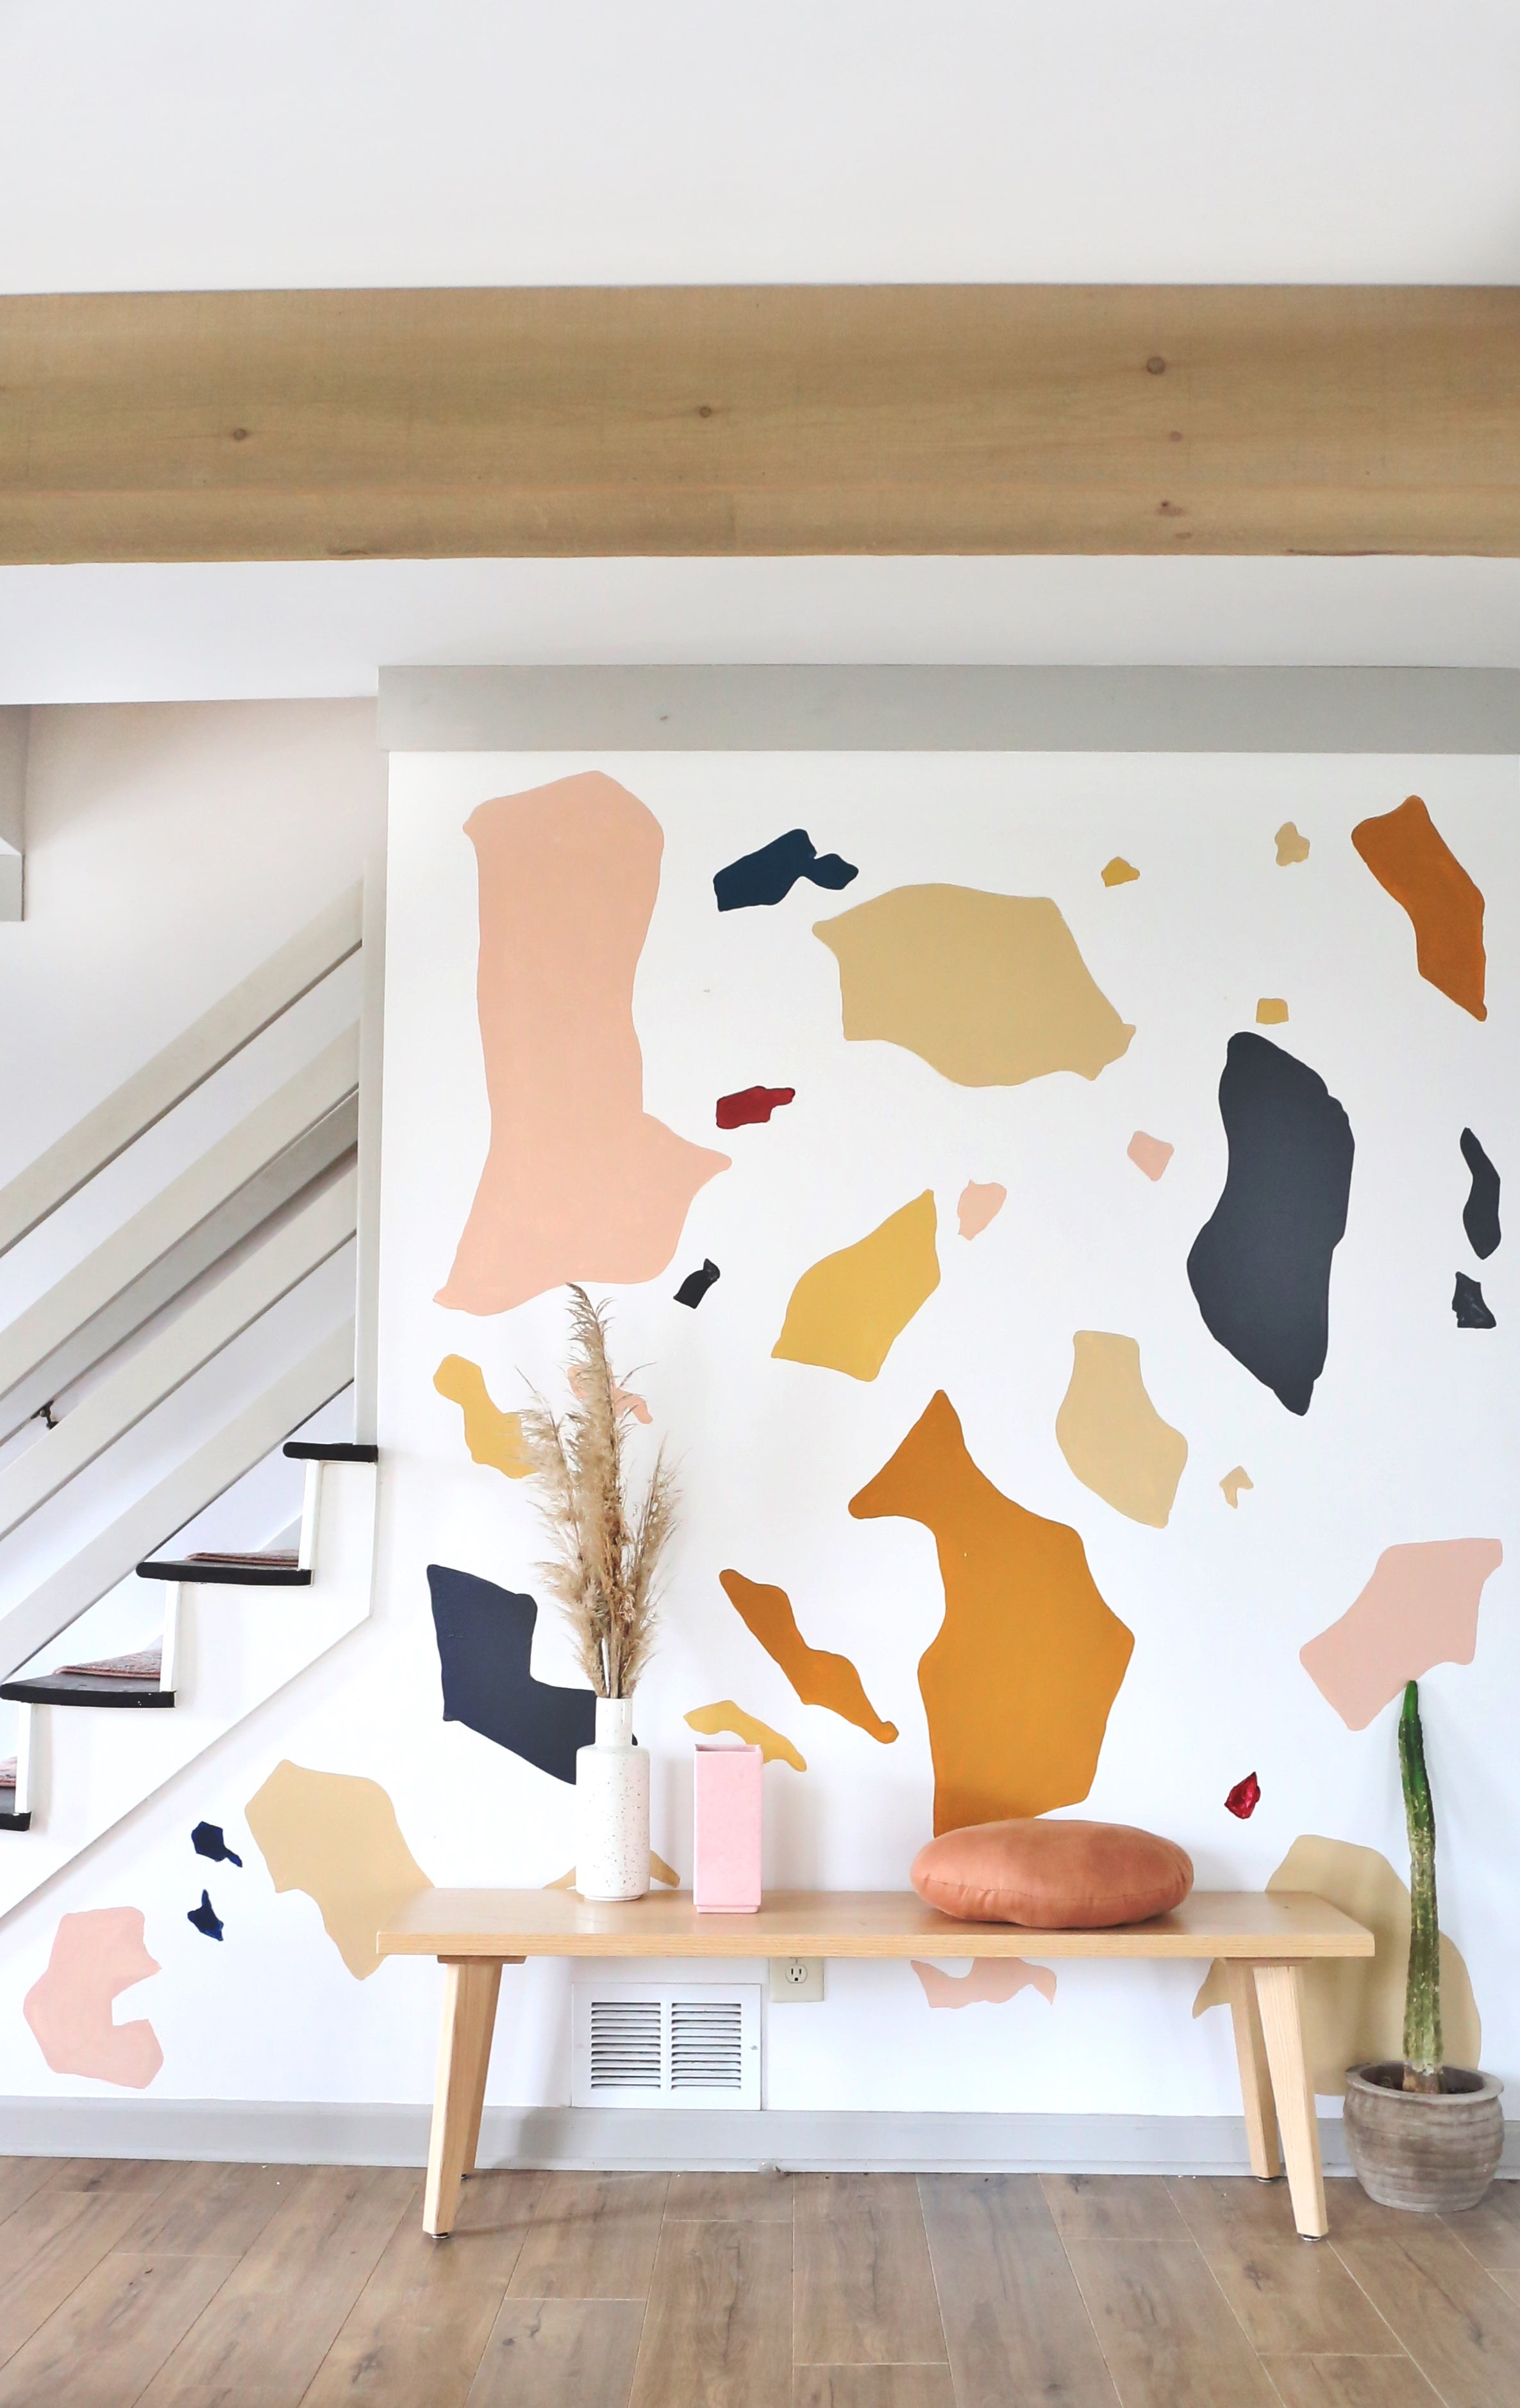 giant terrazzo shapes on a wall by the stairs